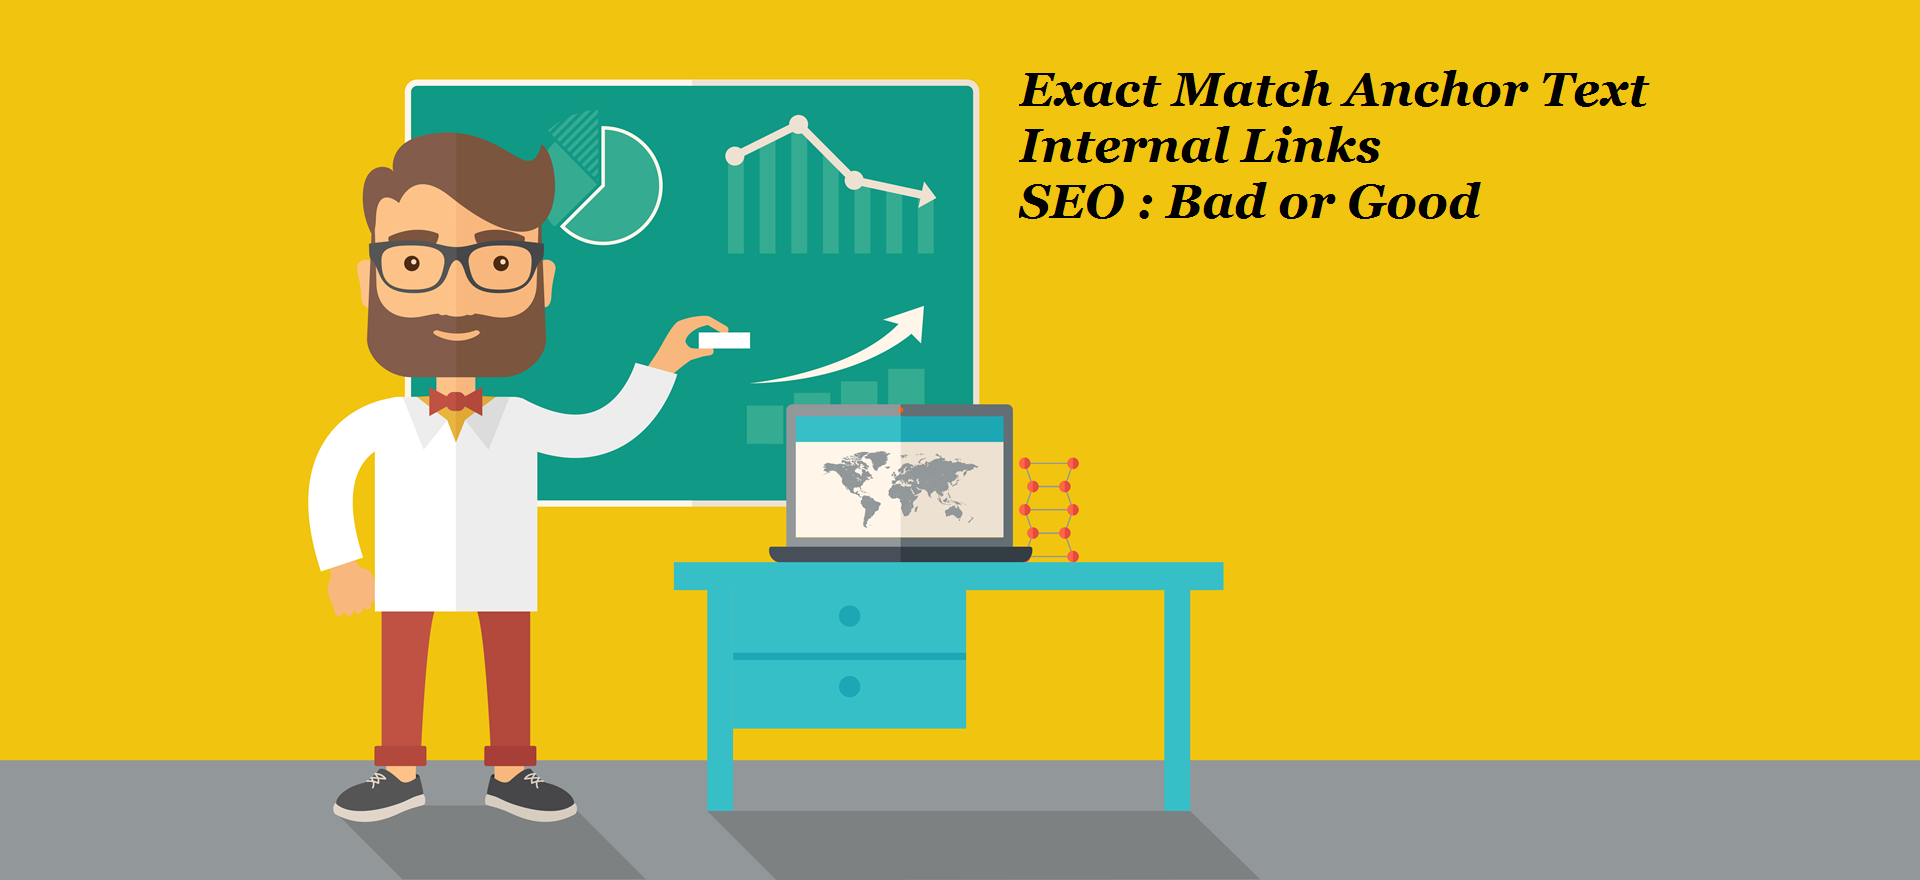 Exact Match Anchor Text Internal Links SEO : Bad or Good